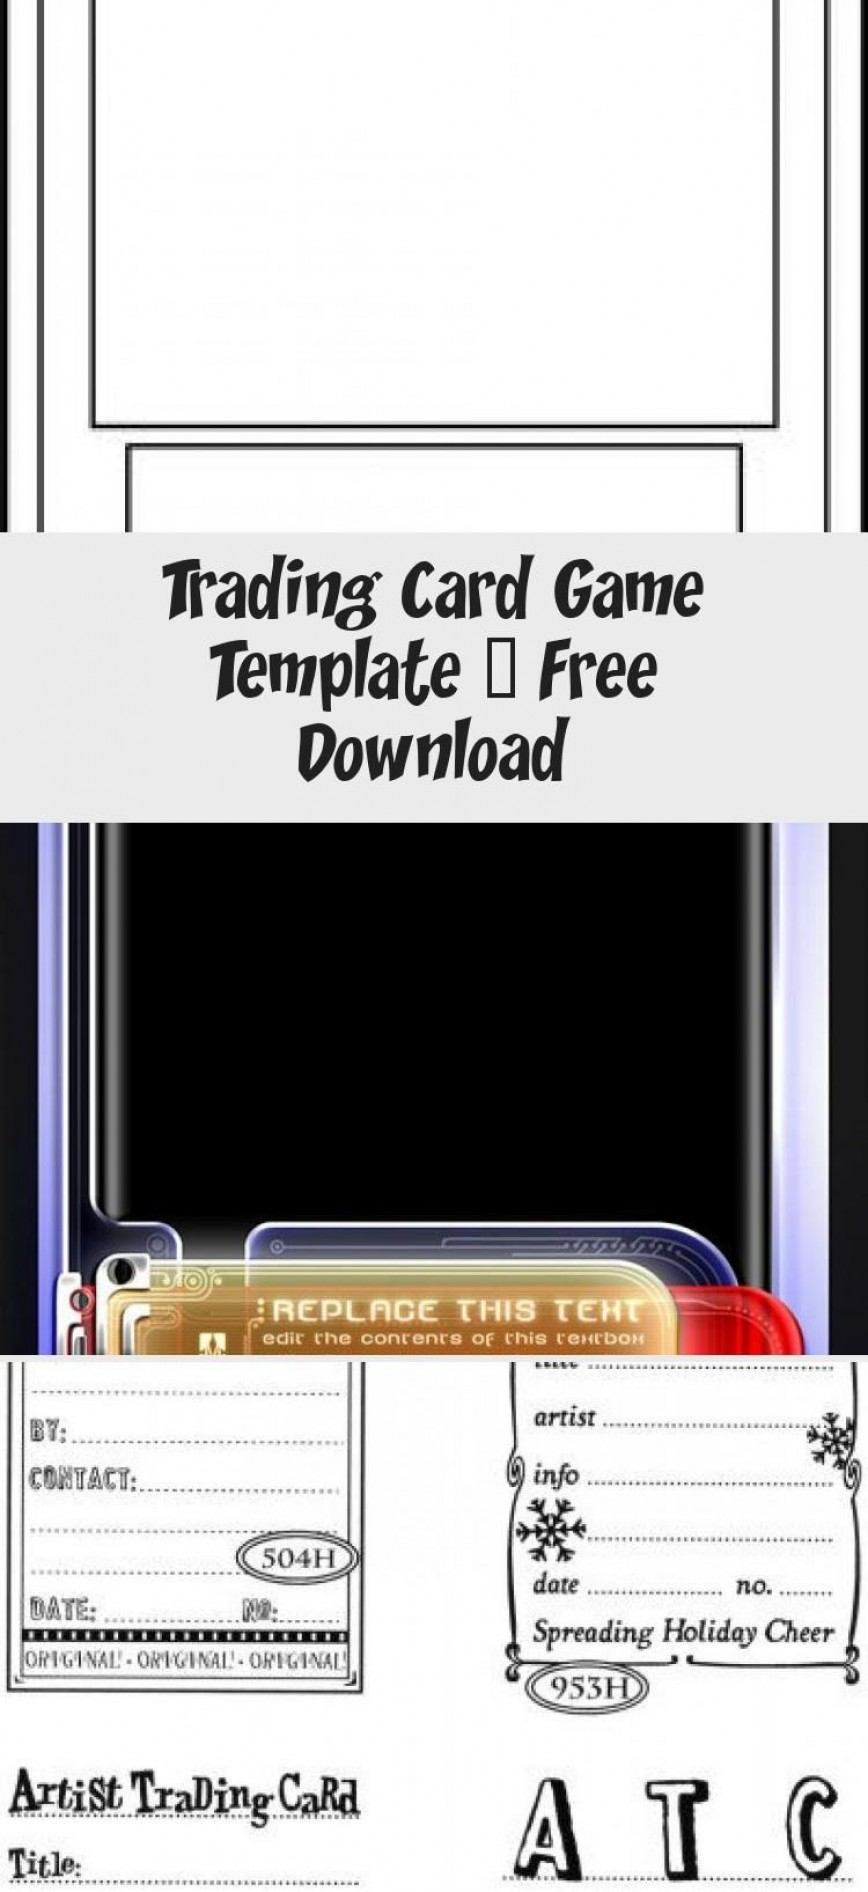 001 Formidable Trading Card Template Free Concept  Game Maker Download868